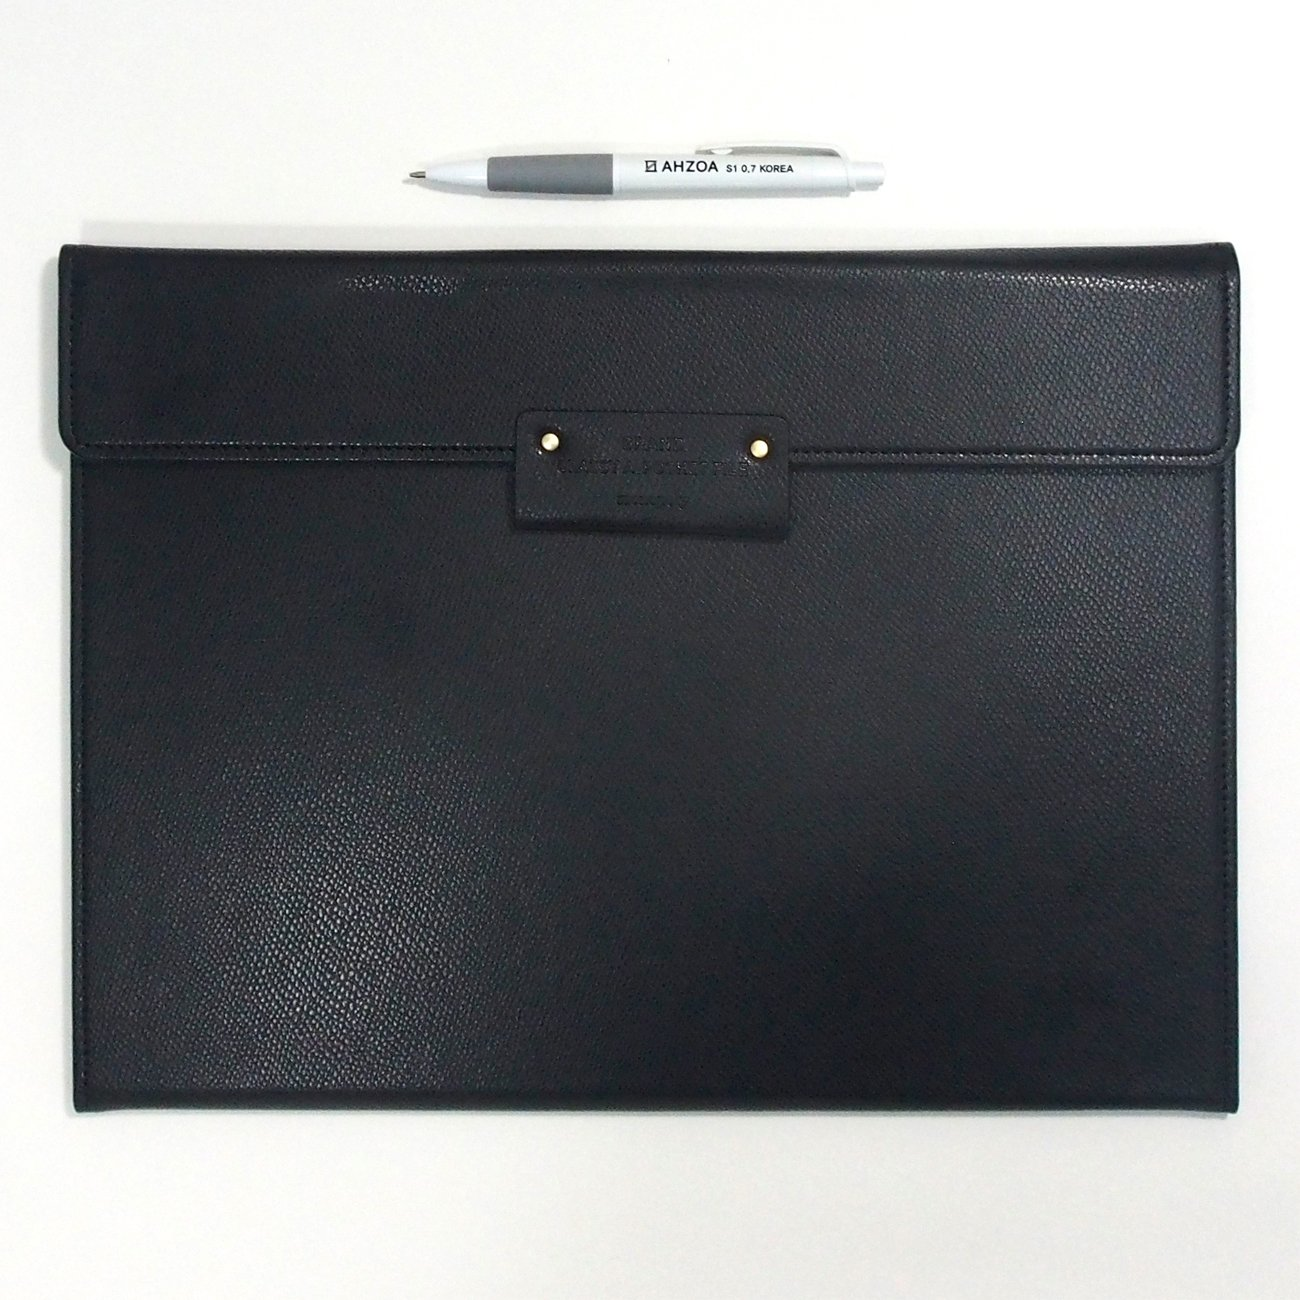 Grand Classy 8 Pockets File Holder with AHZOA Pencil (black) by Monopoly (Image #2)